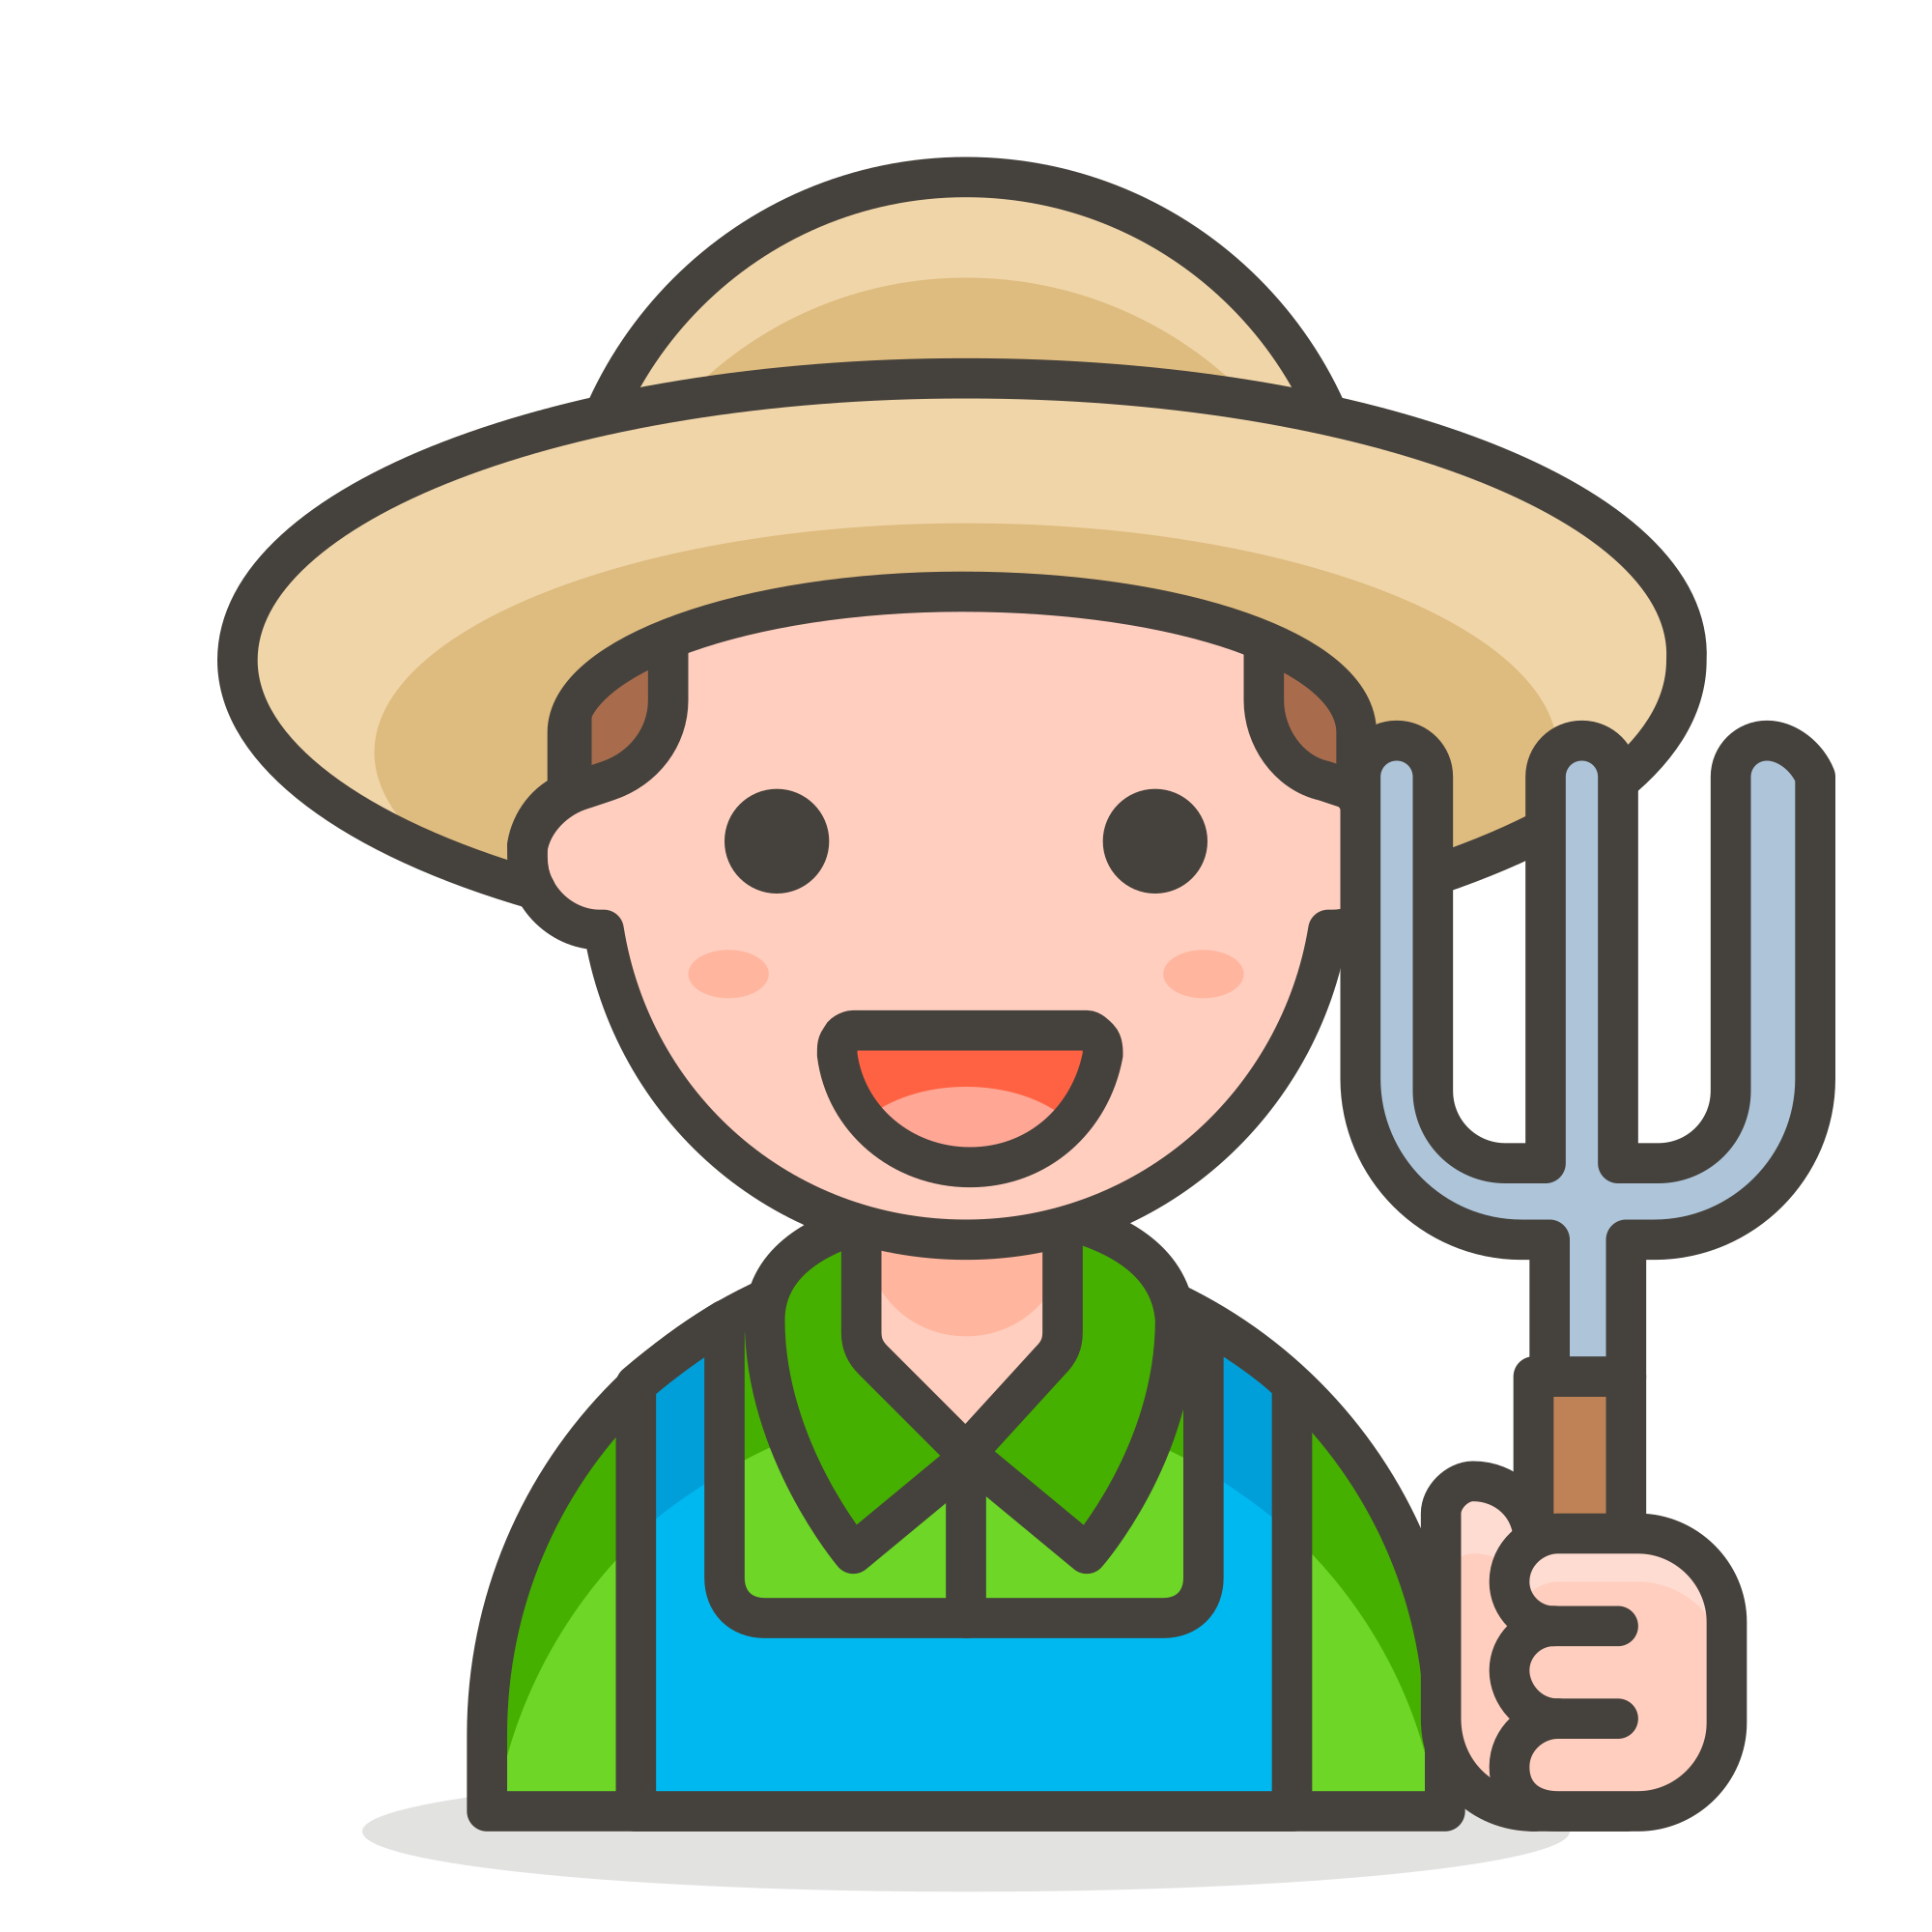 Farmer svg. File man wikimedia commons